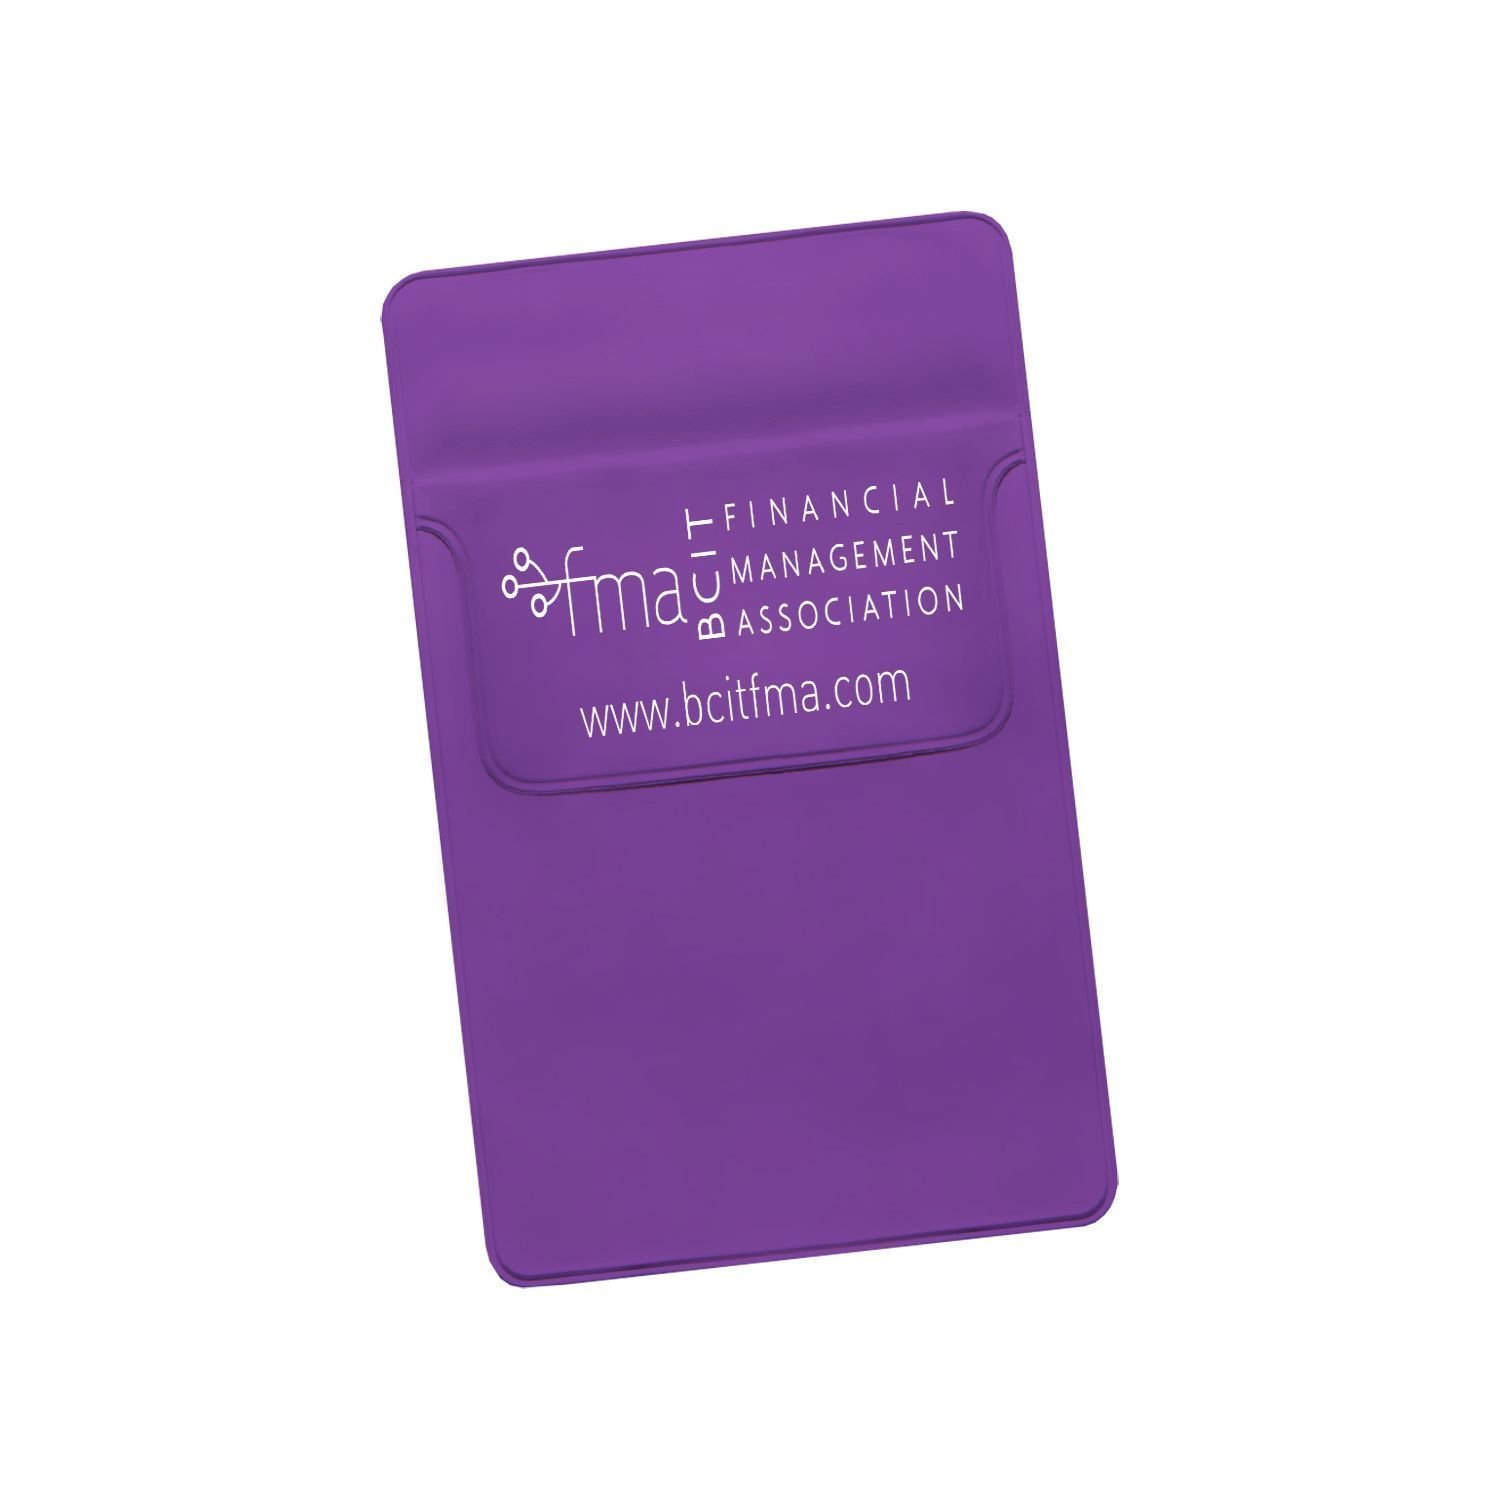 Promos With Imprint Personalized Pocket Protector 1 3/4 Flap - Translucent -600 per Package- Bulk